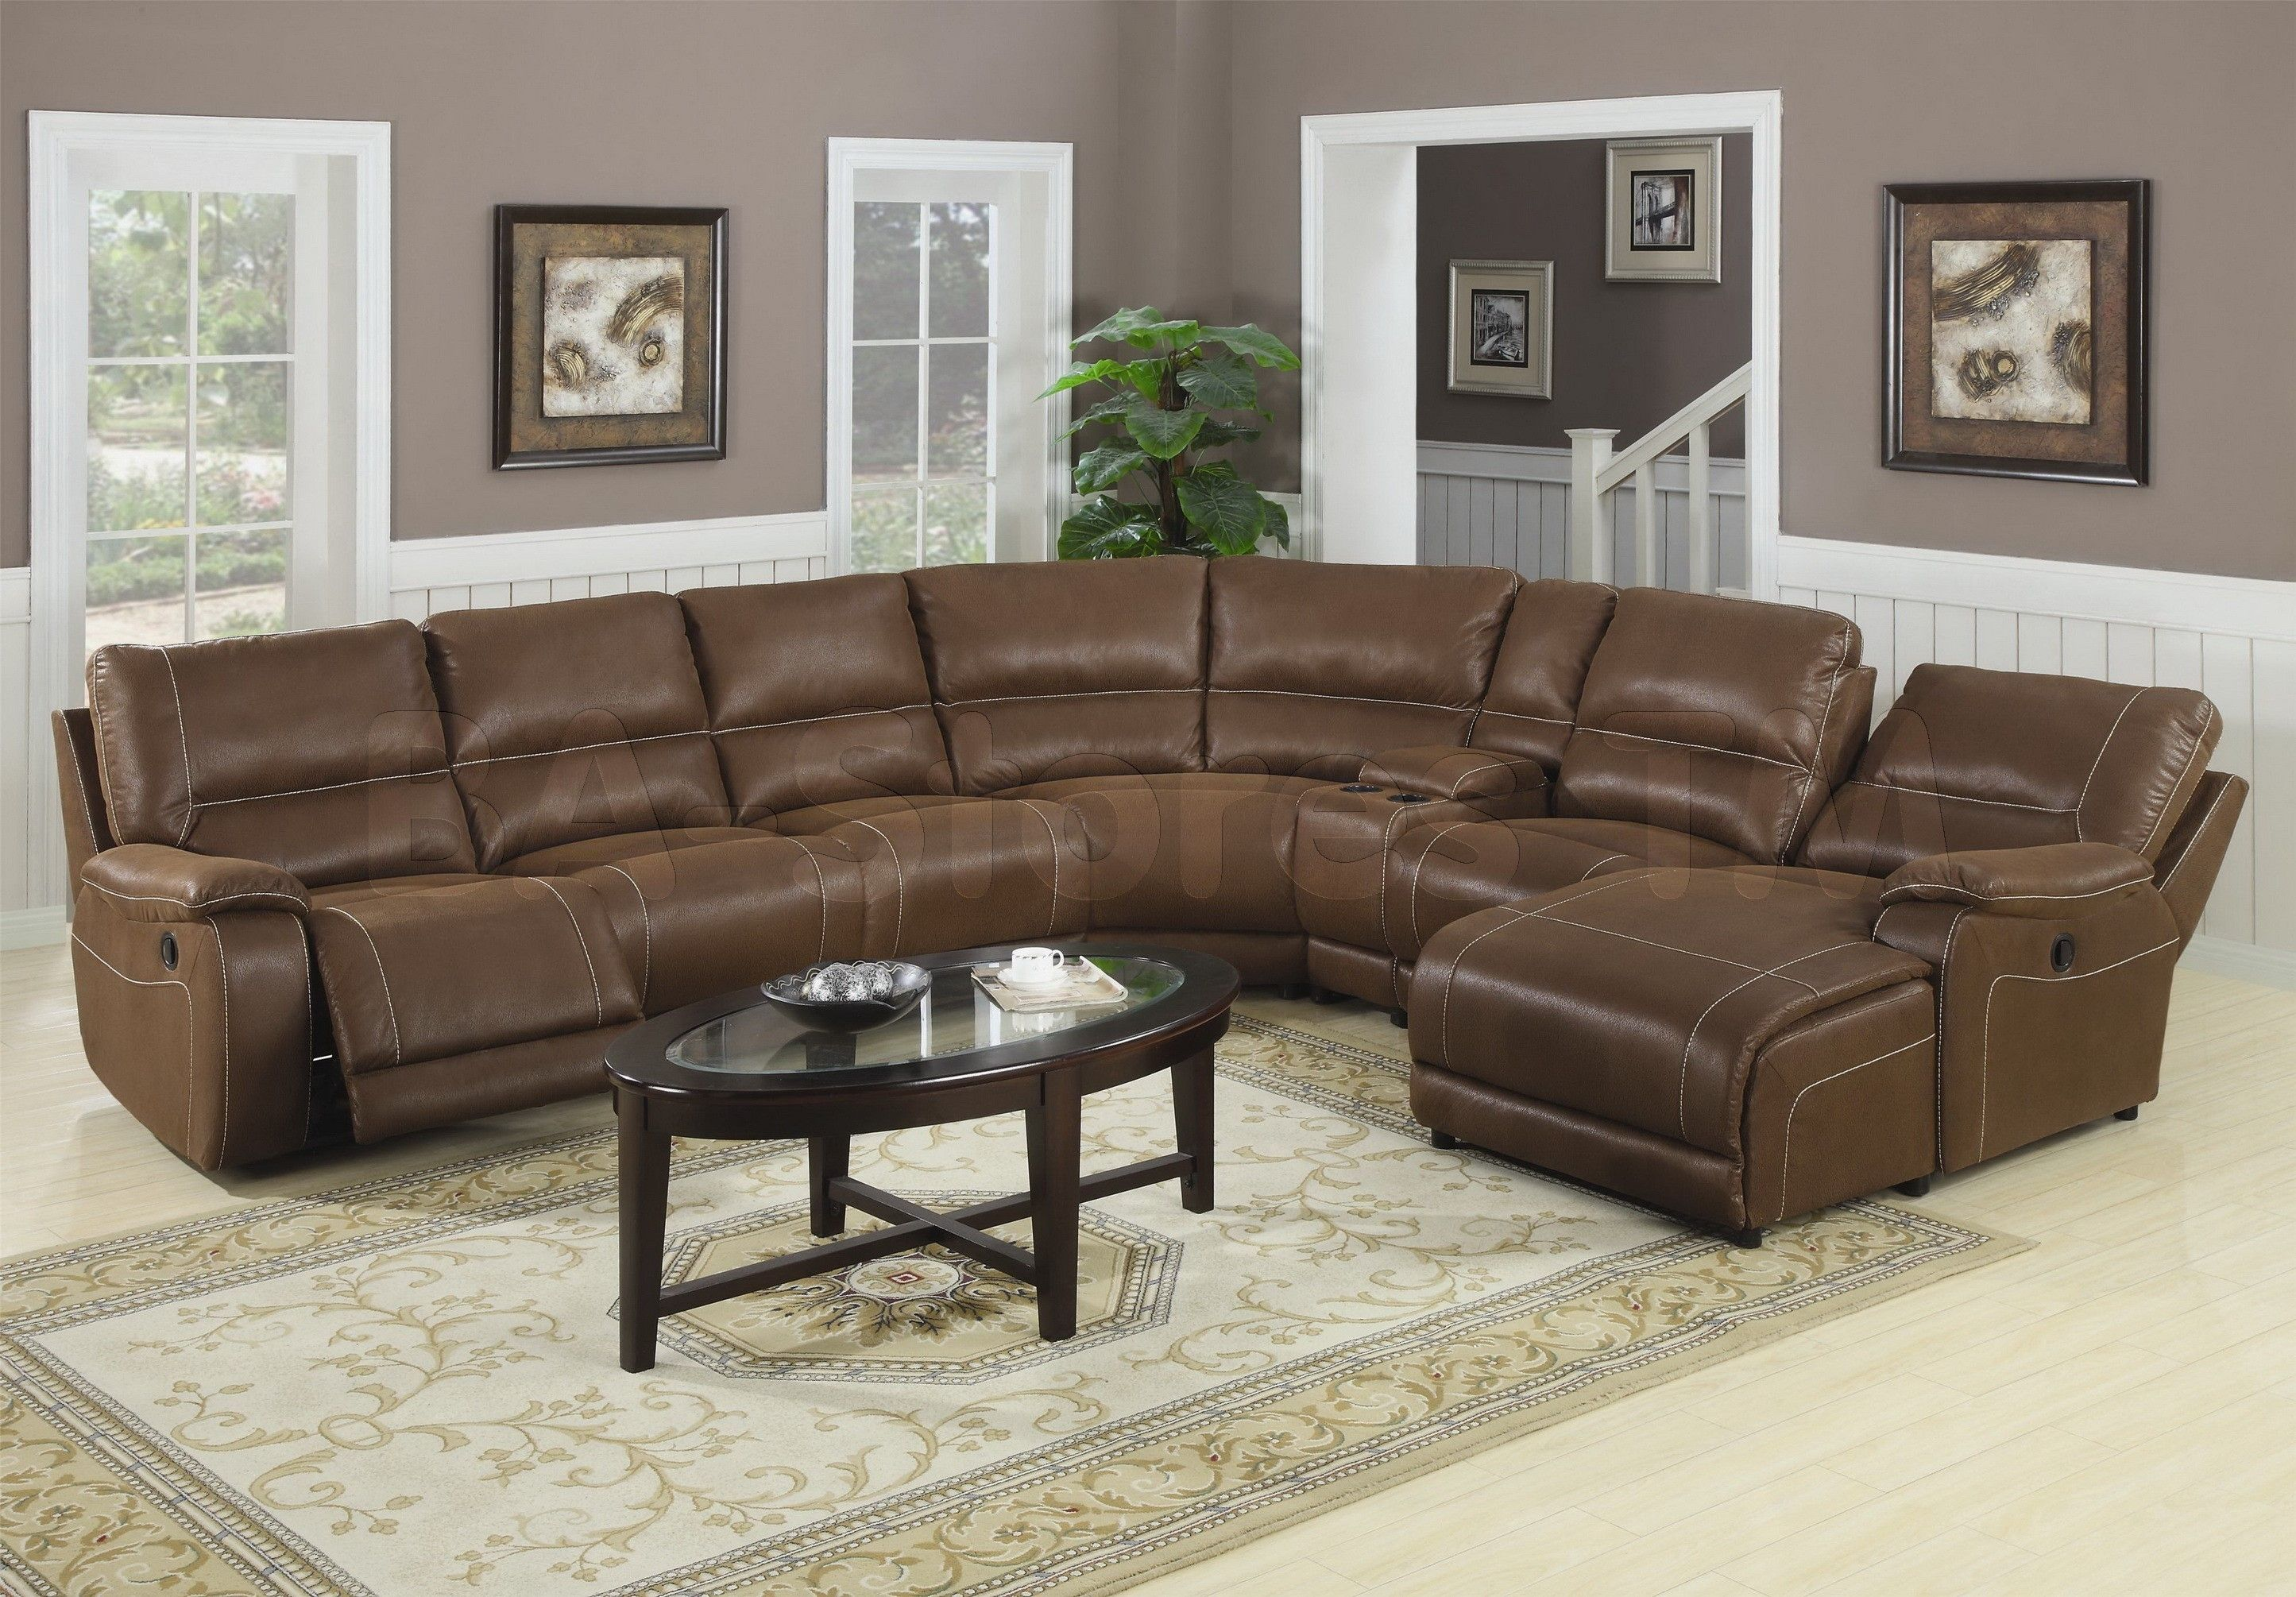 Sofa Reclinavel Como Inclinar Extra Large Leather Sectional Sofas Materials Fashion And The